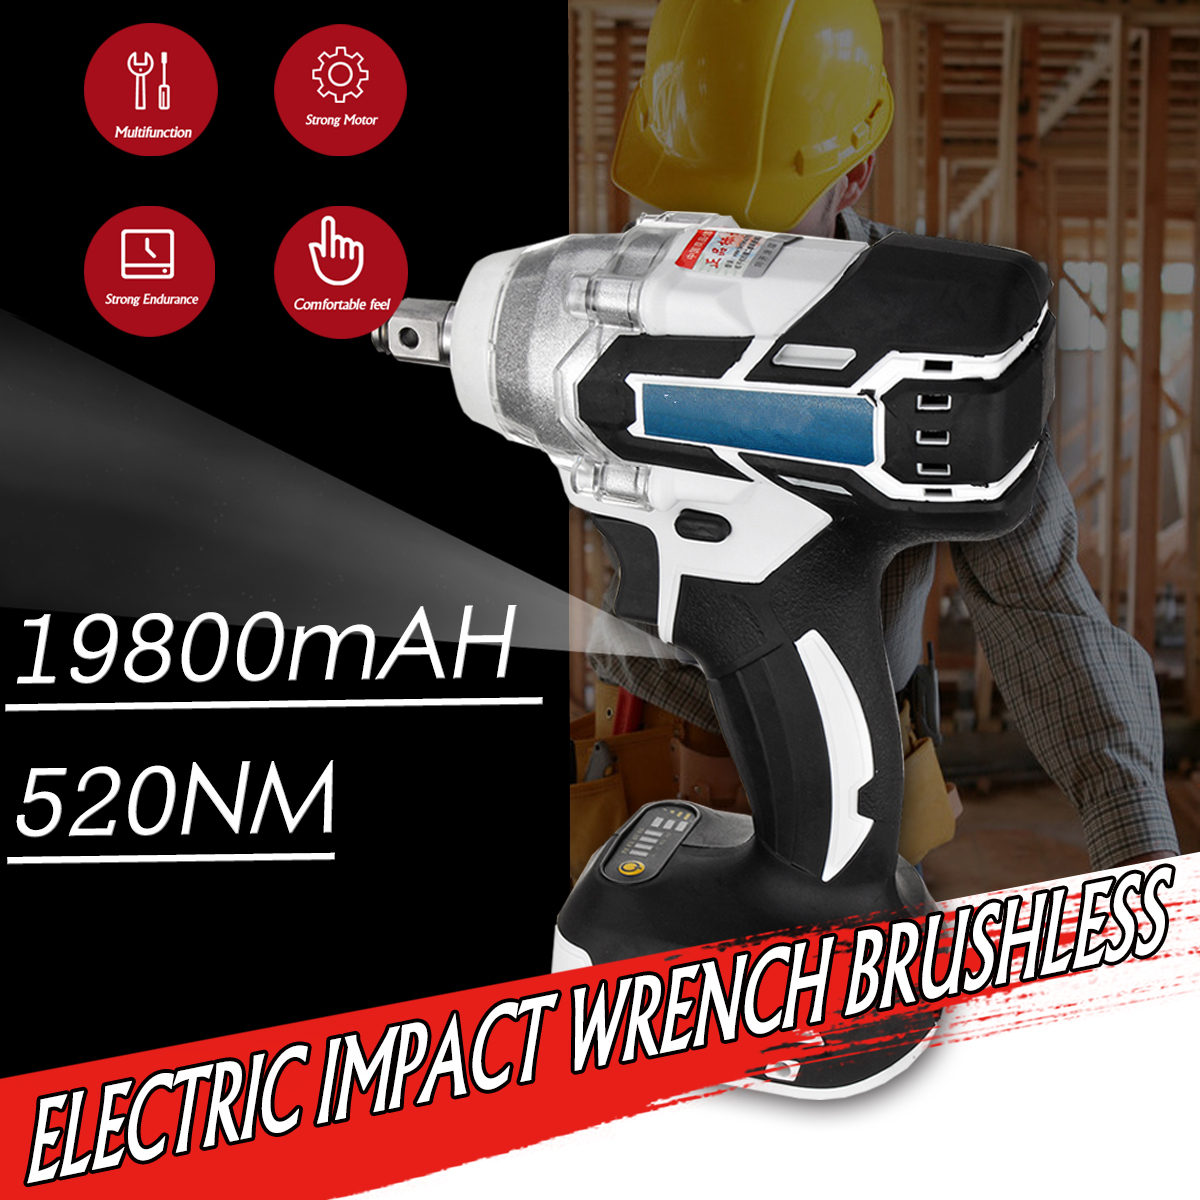 Multifunction 128V 1280W 19800mAH Electric Cordless Brushless Hammer Power Drill Screwdriver 240-520NM Adjustable Stepless Speed